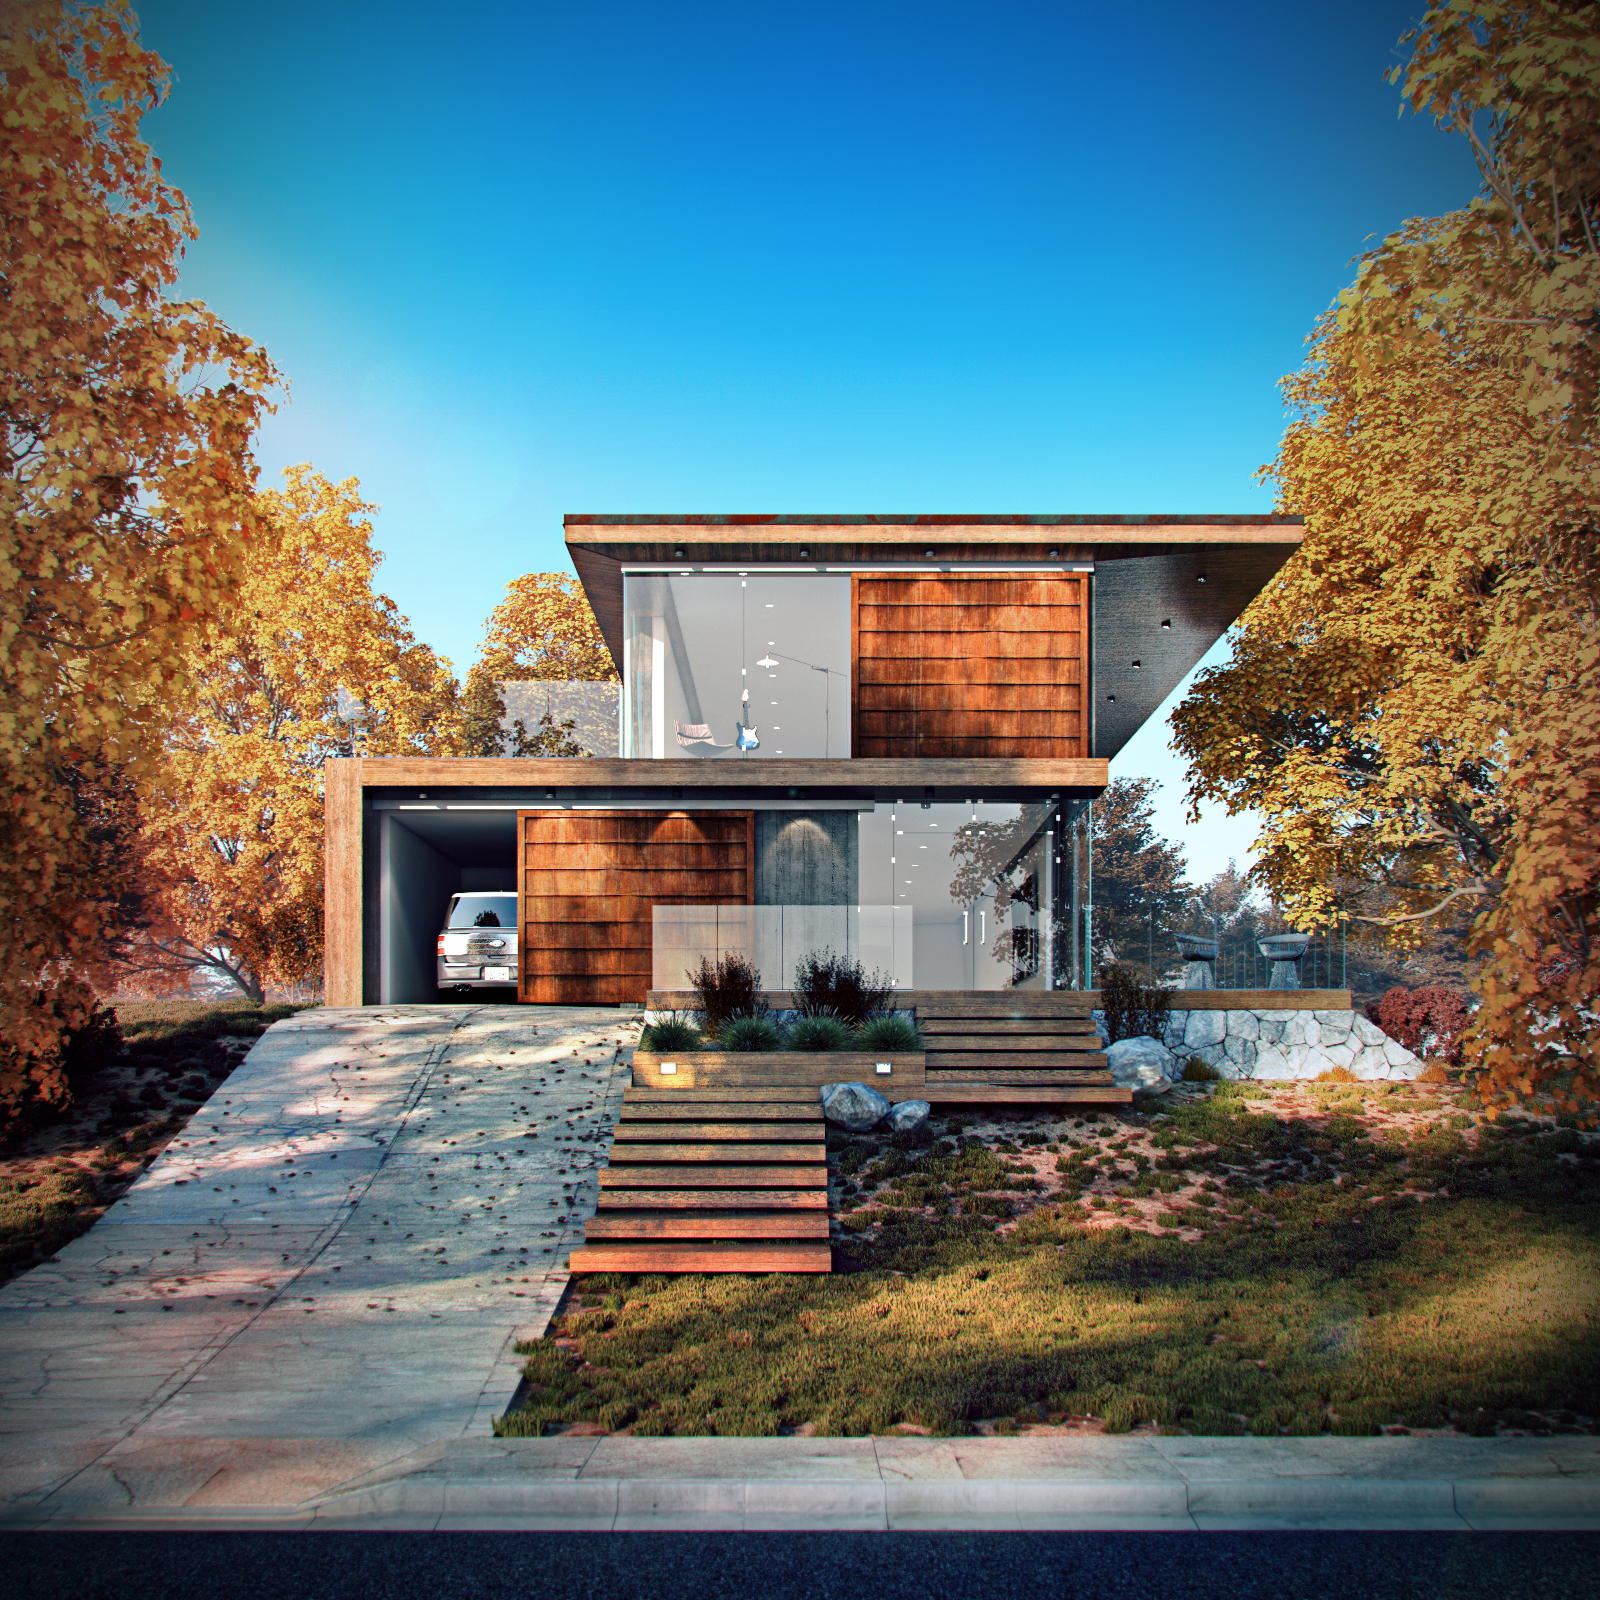 Free CG: Learn 3d Design and Architectural Visualization ...